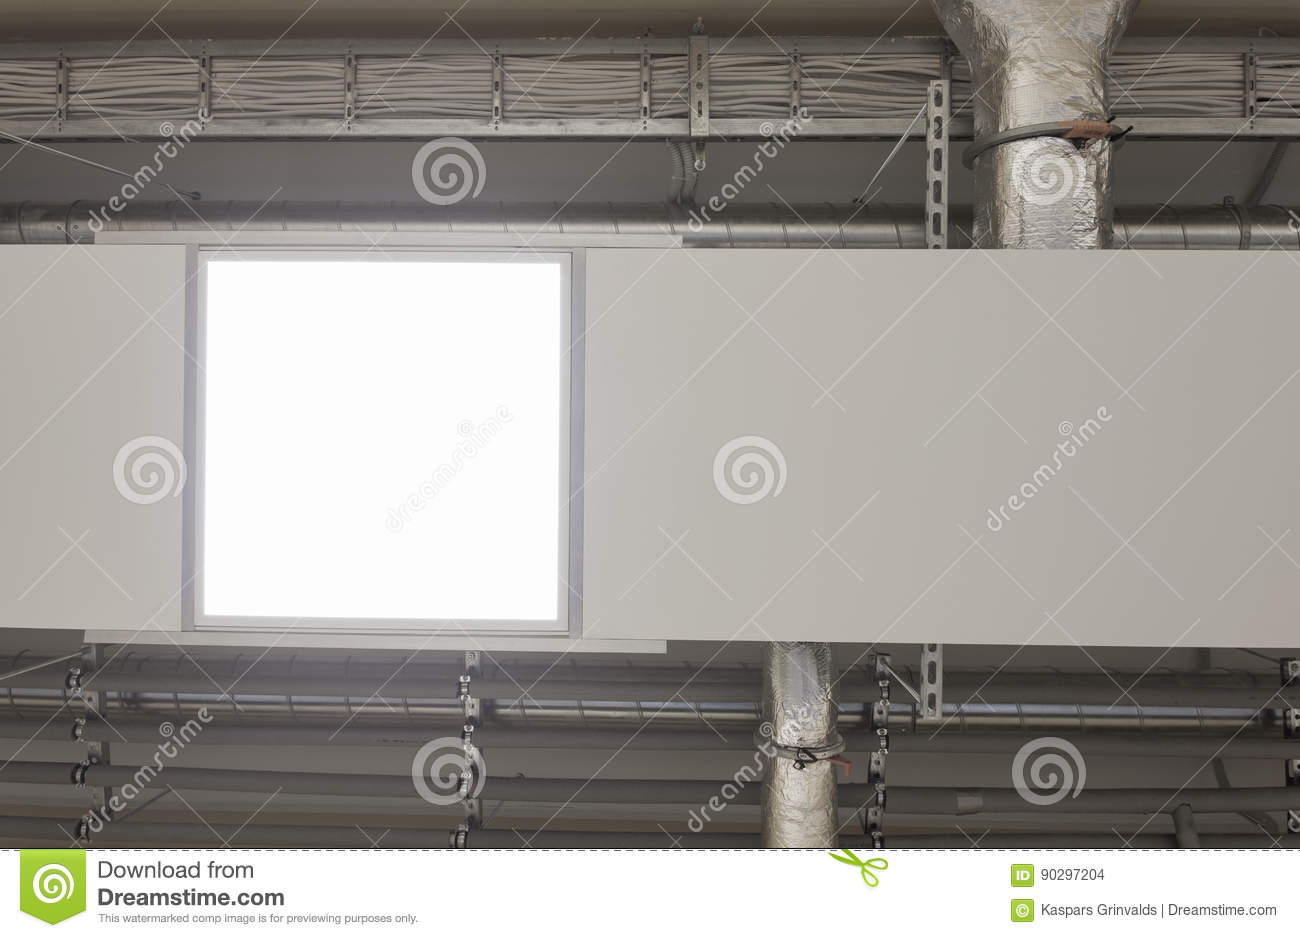 Modern heating pannels on ceiling